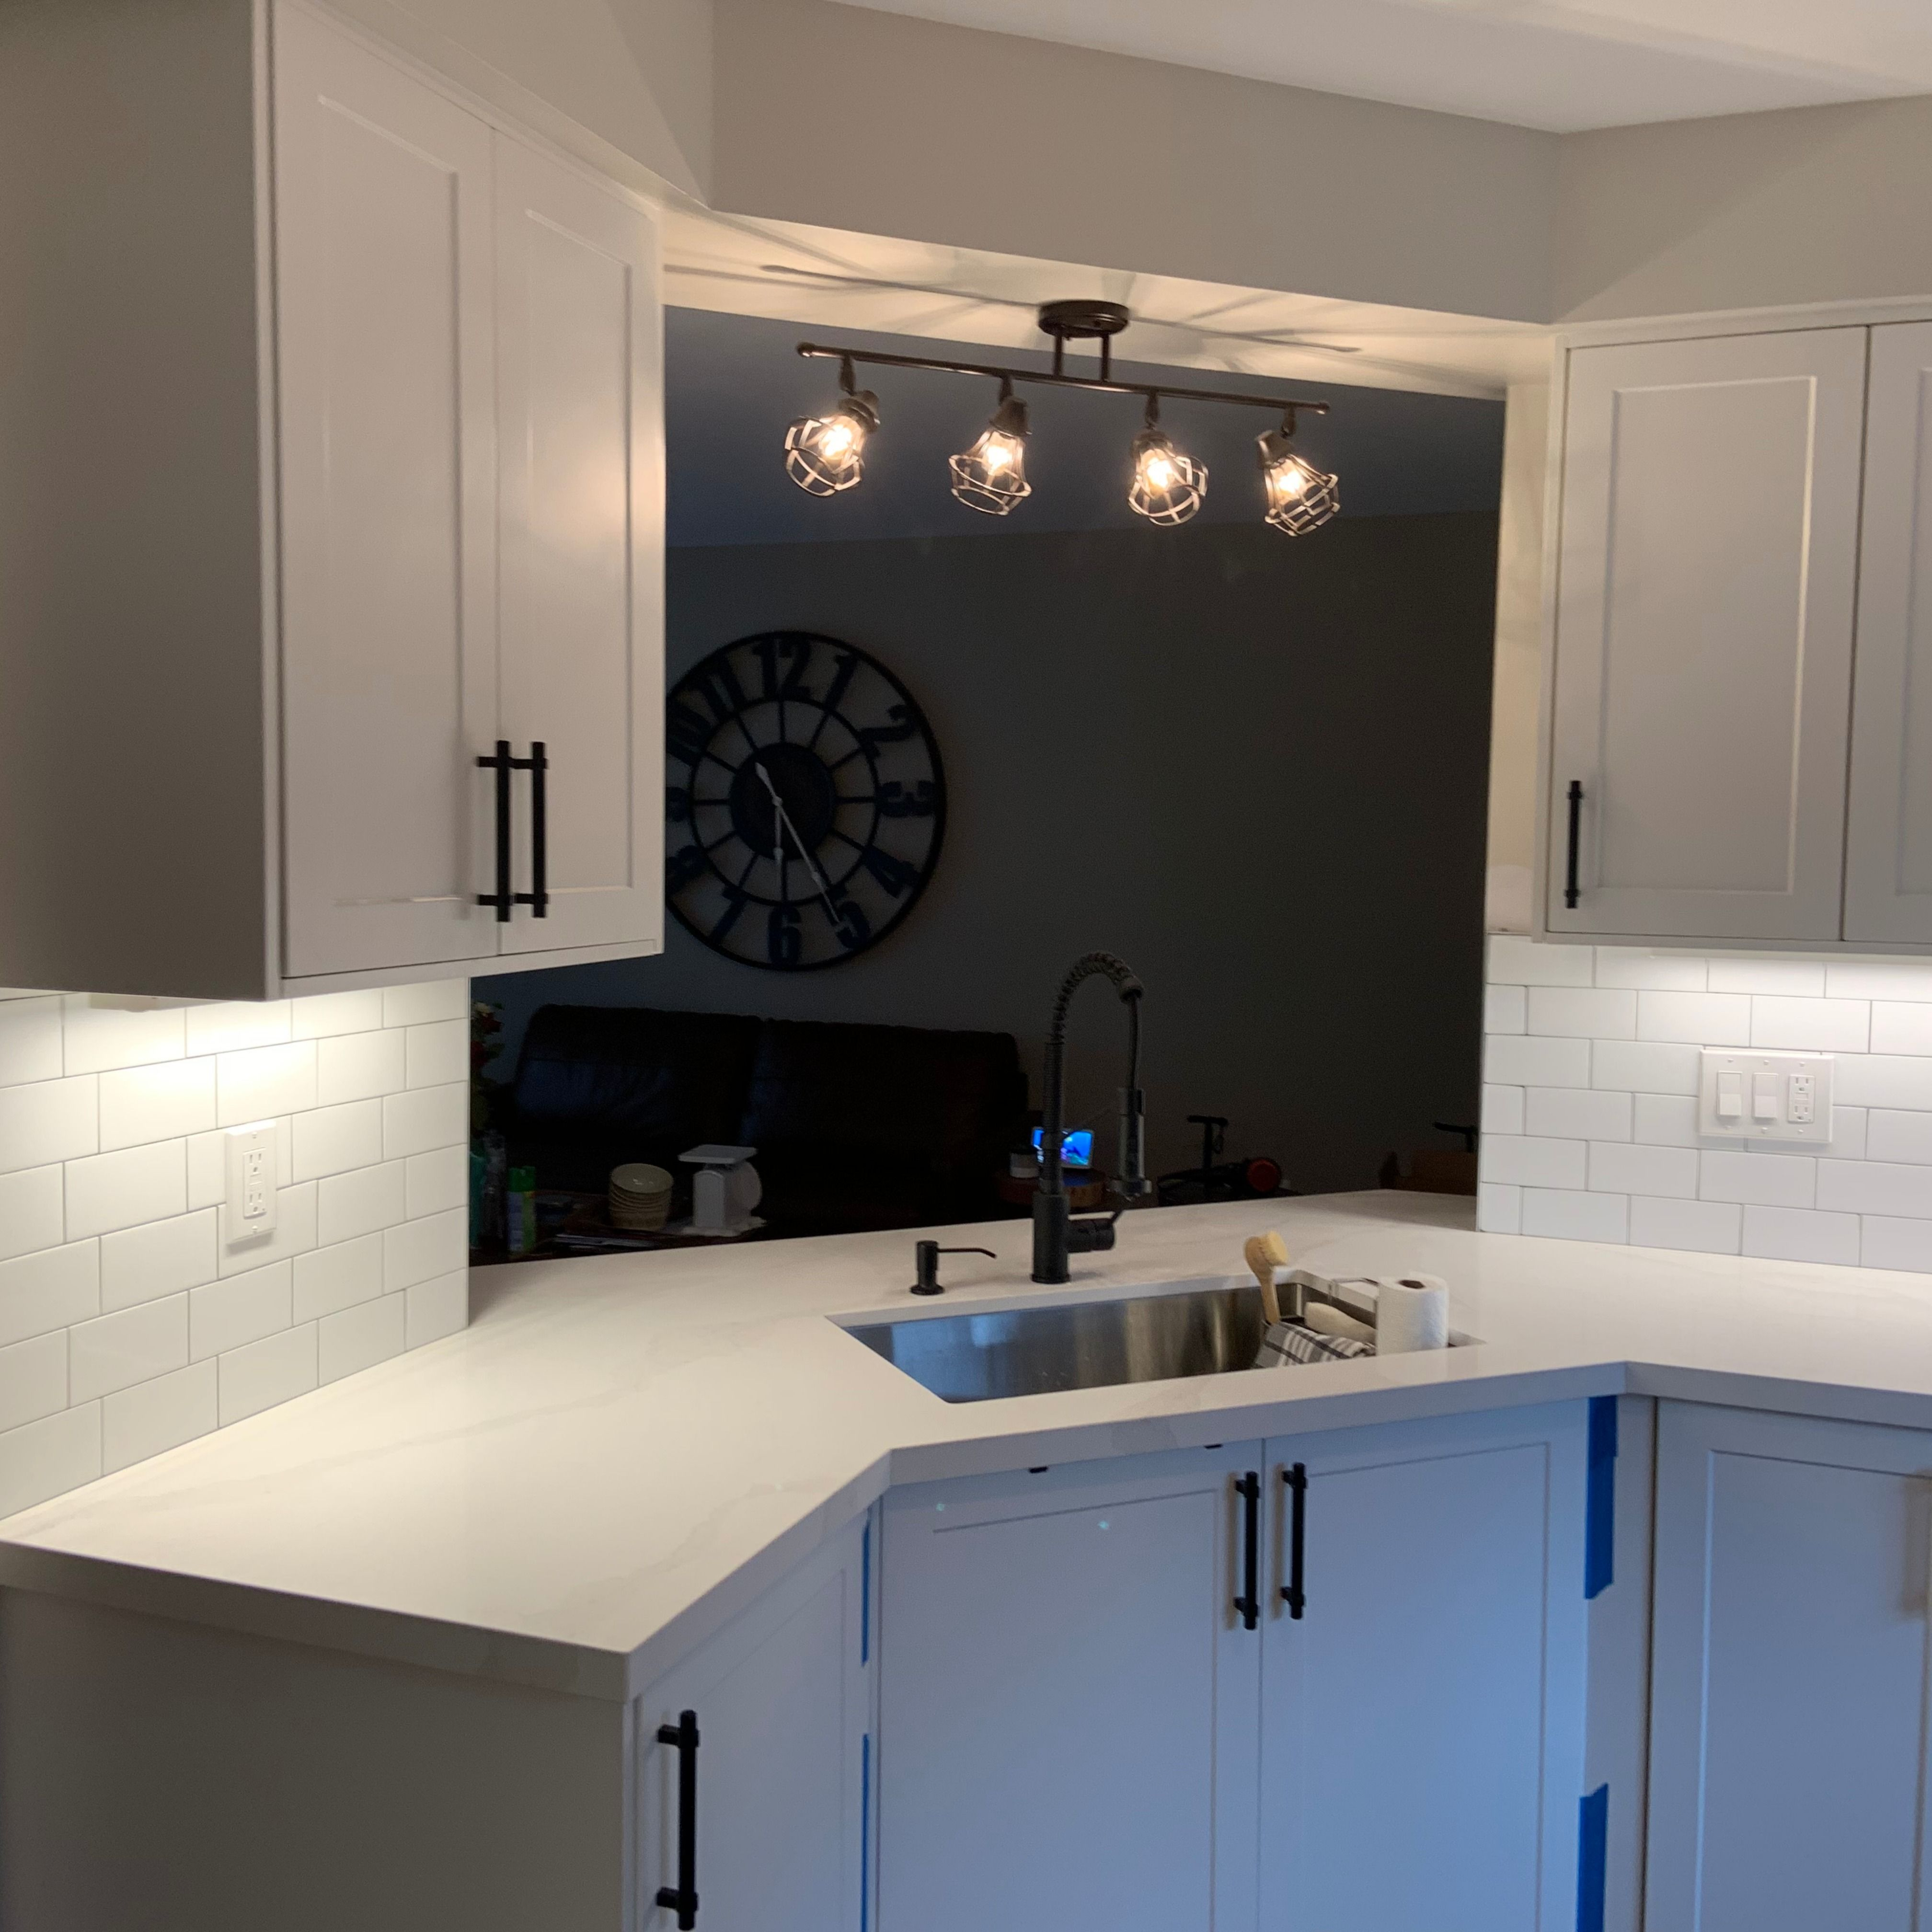 Executive Shaker Cabinets In Crystal White Replacement Kitchen Doors Kitchen Renovation Custom Kitchen Cabinets